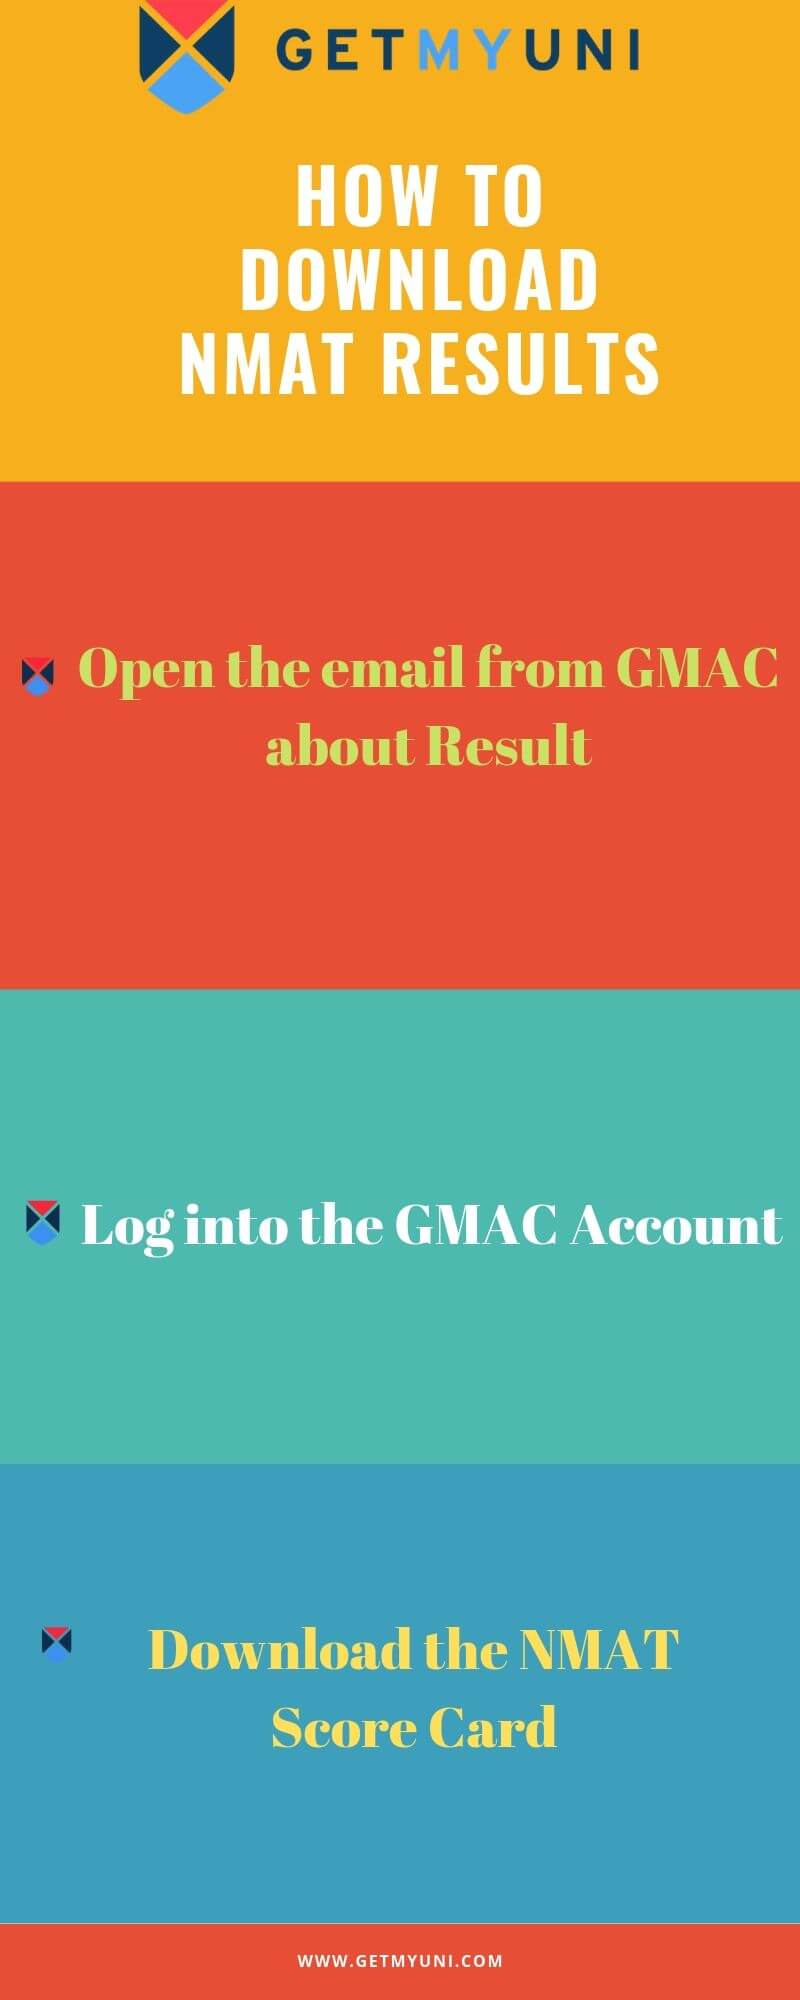 NMAT Results Download